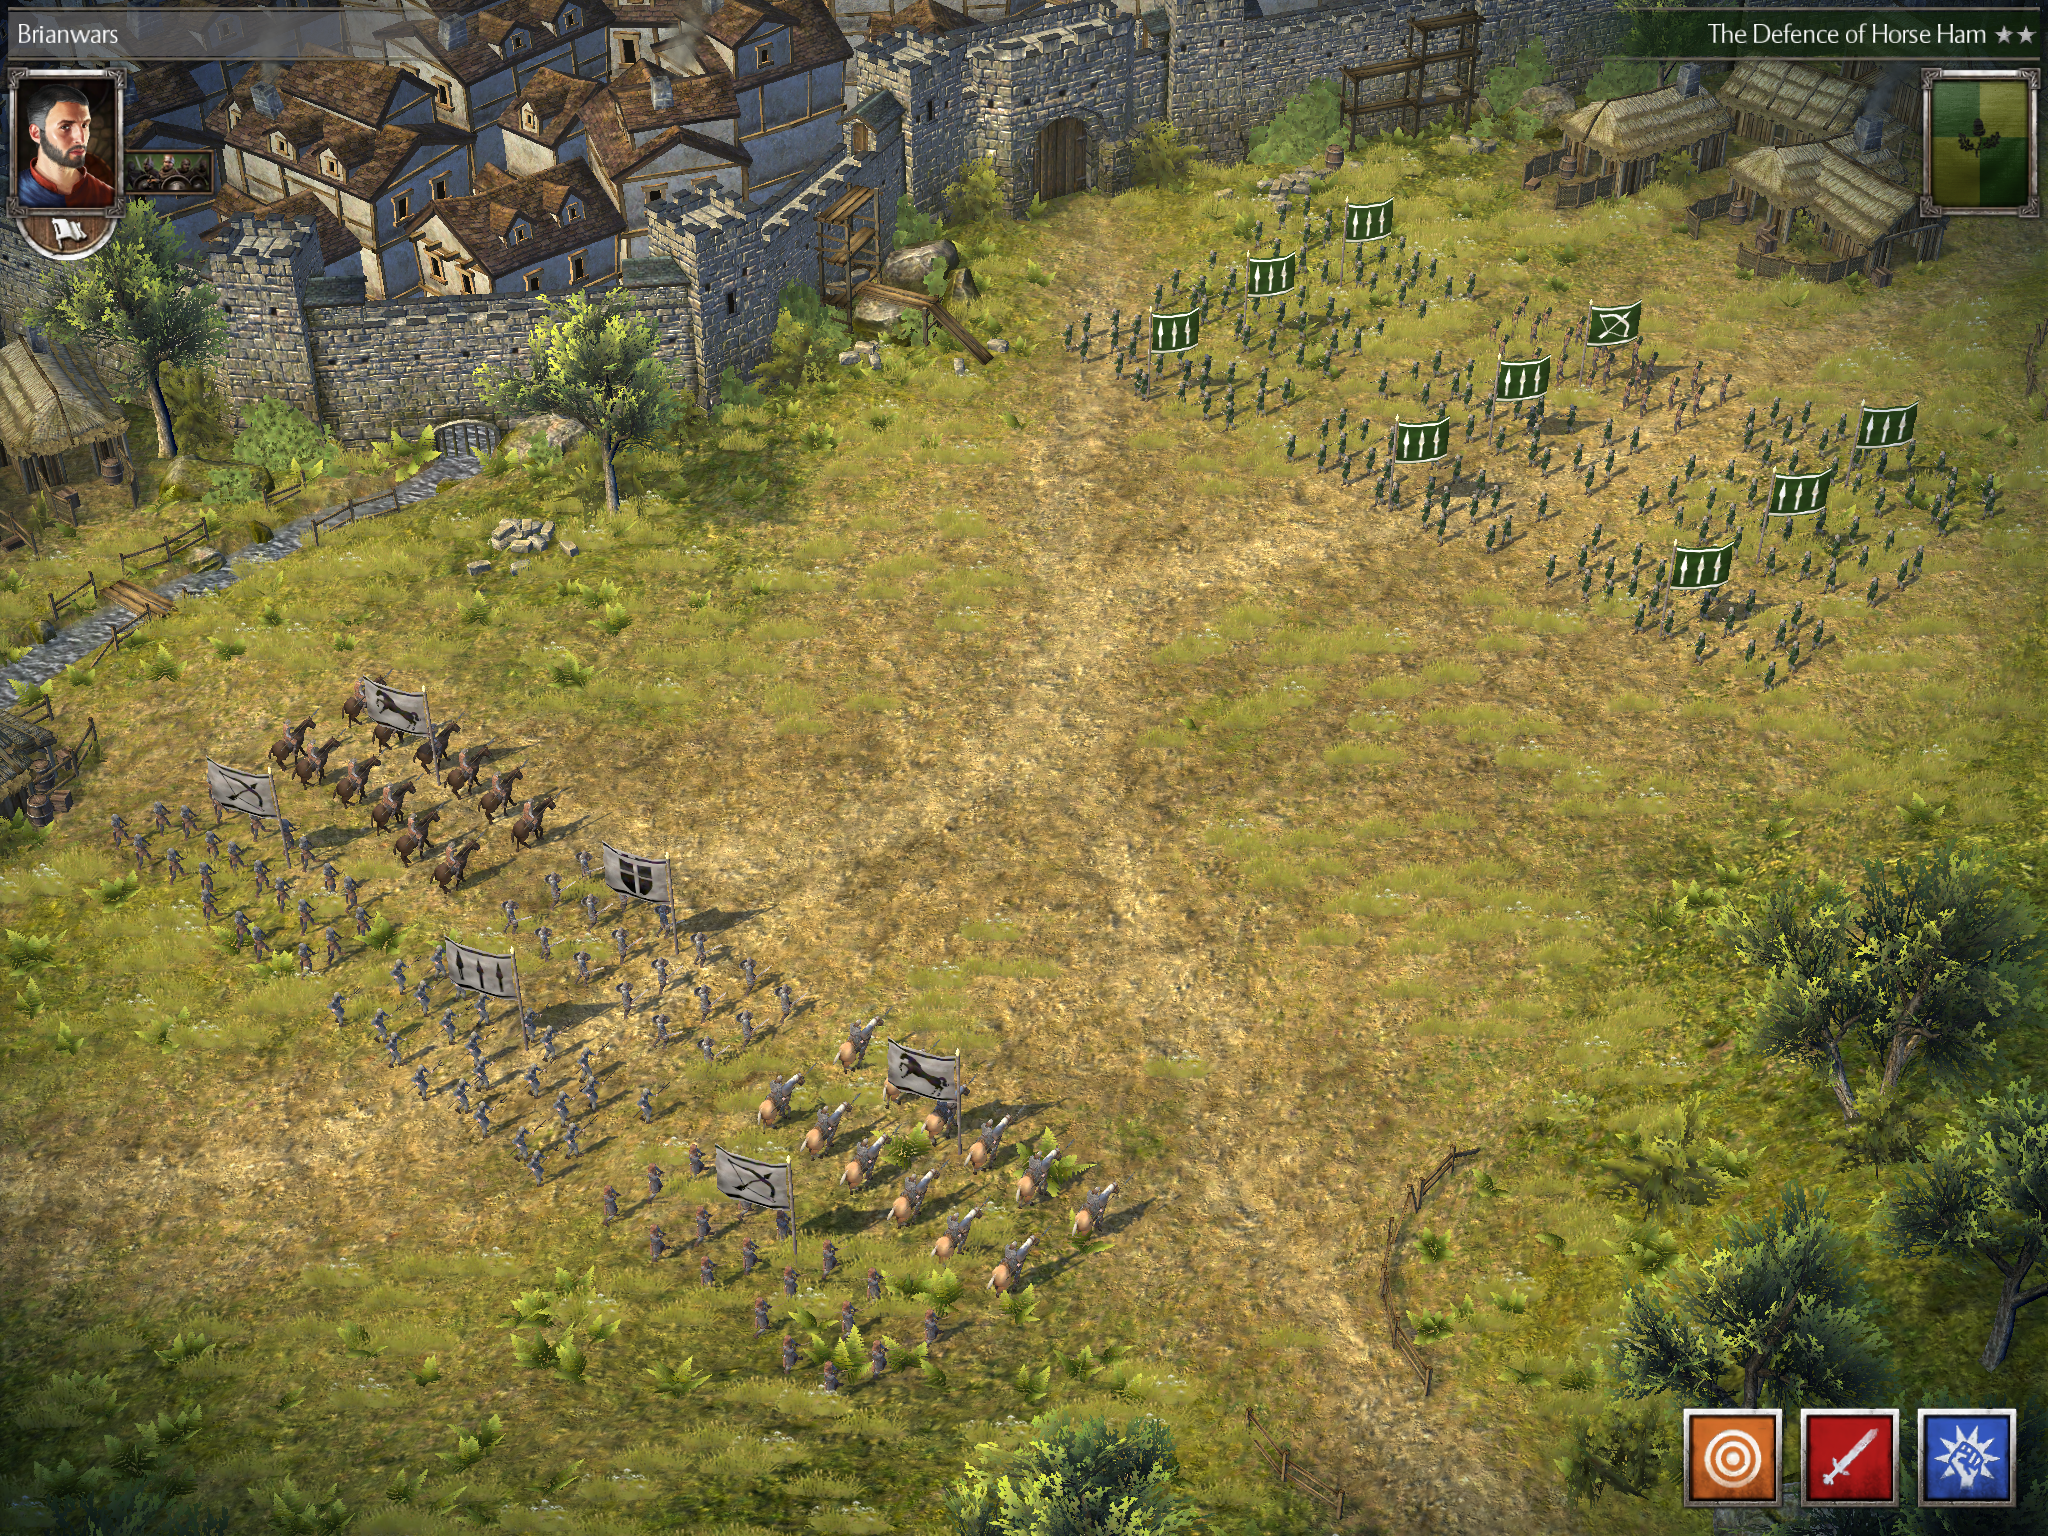 Total War Battles: Kingdom - If you build it, you'll probably have to fight over it